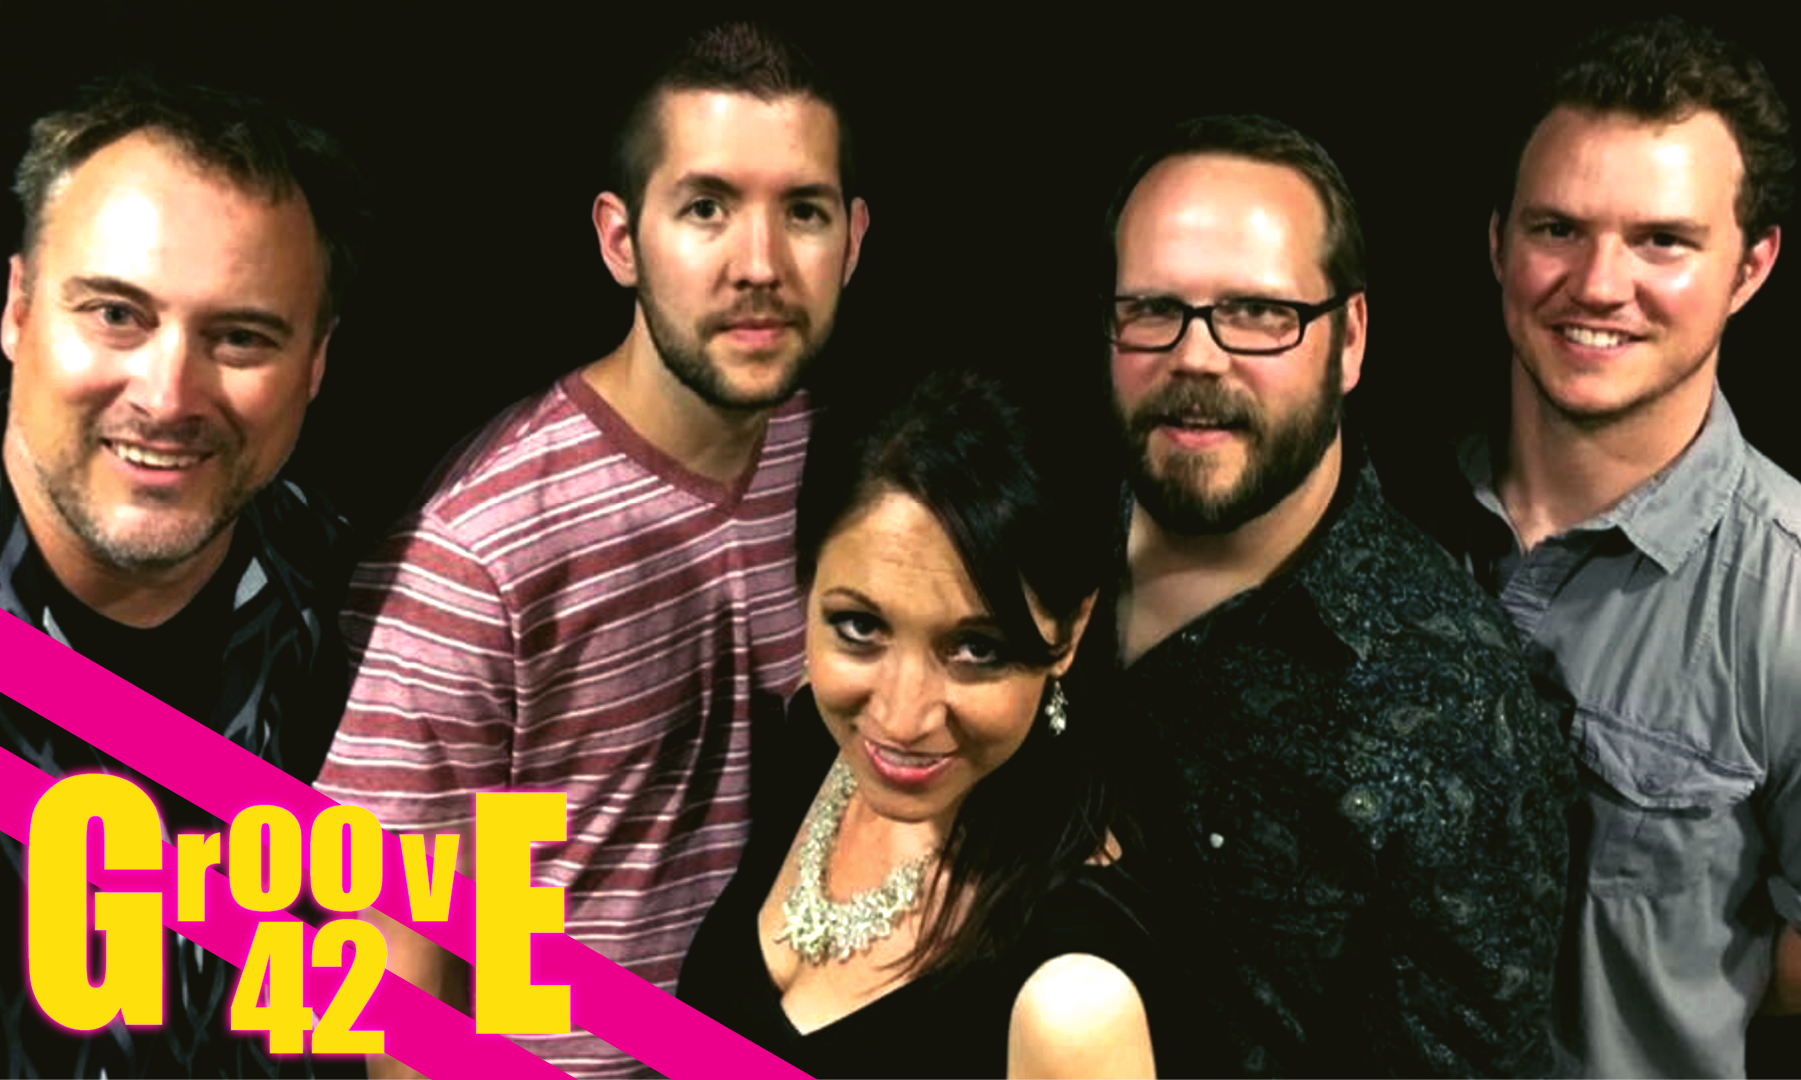 Popular Wichita band Groove 42 will play into the evening from the stage on the KAKEland Lawn!